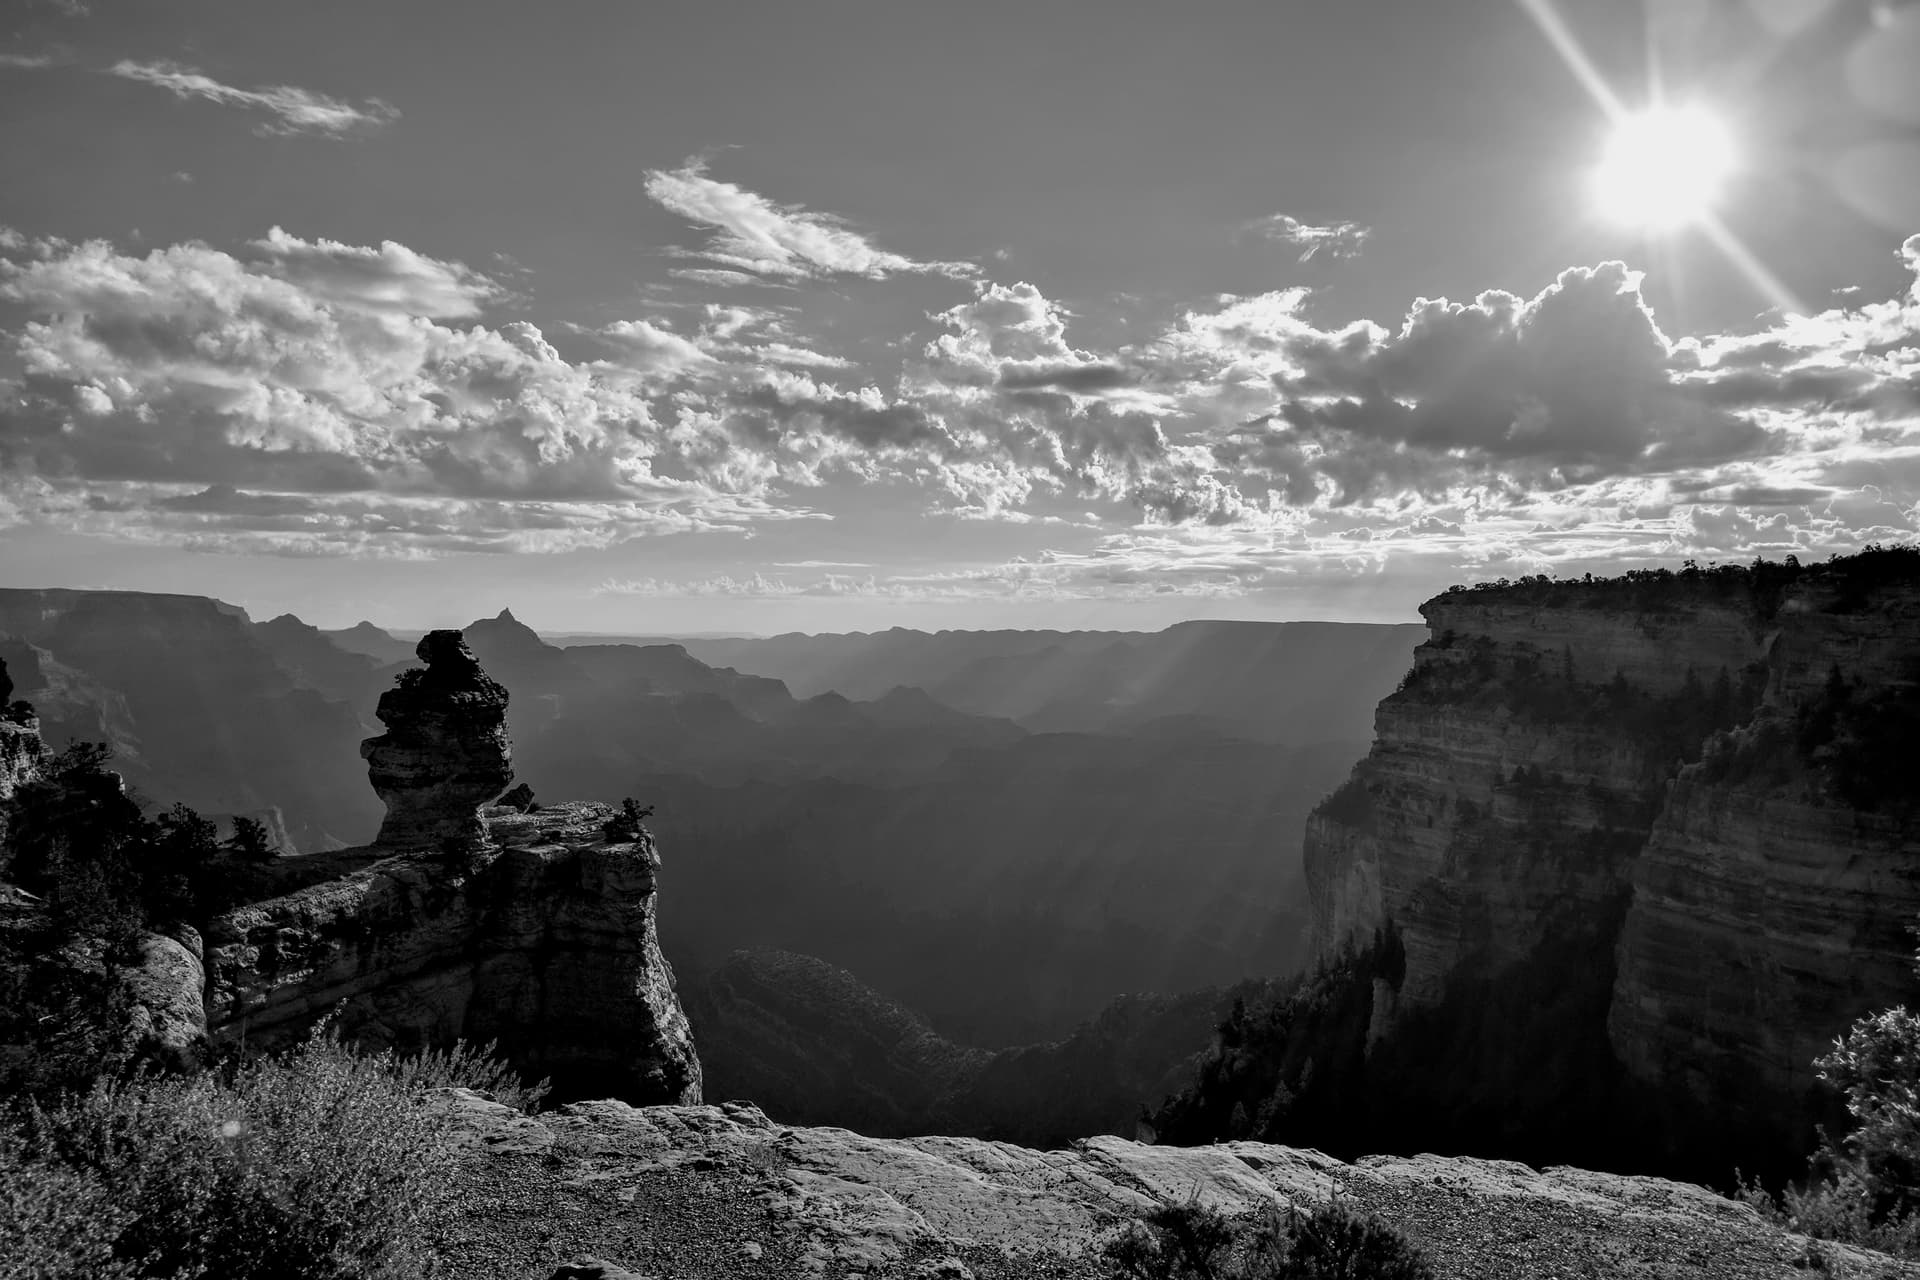 A black-and-white photograph of the Grand Canyon shortly after dawn. Thick haze obscures the far side of the Canyon. In the foreground, a pillar of rock rises out of the South Rim.